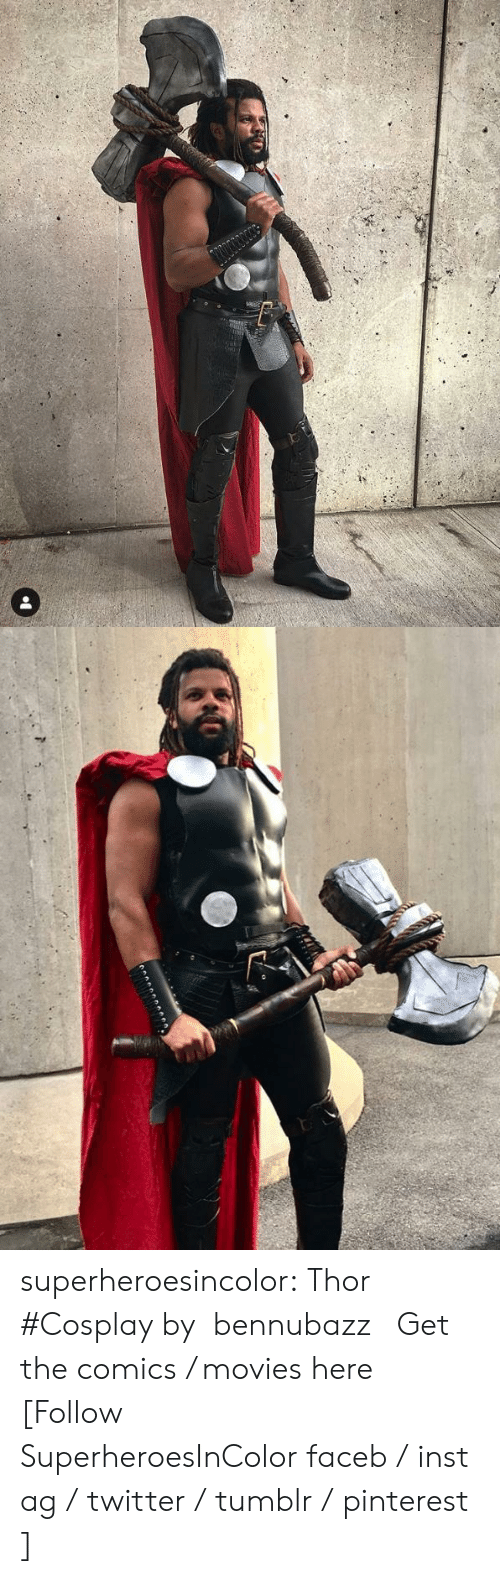 pinterest.com: superheroesincolor: Thor #Cosplay by  bennubazz    Get the comics / movies here [Follow SuperheroesInColor faceb / instag / twitter / tumblr / pinterest]